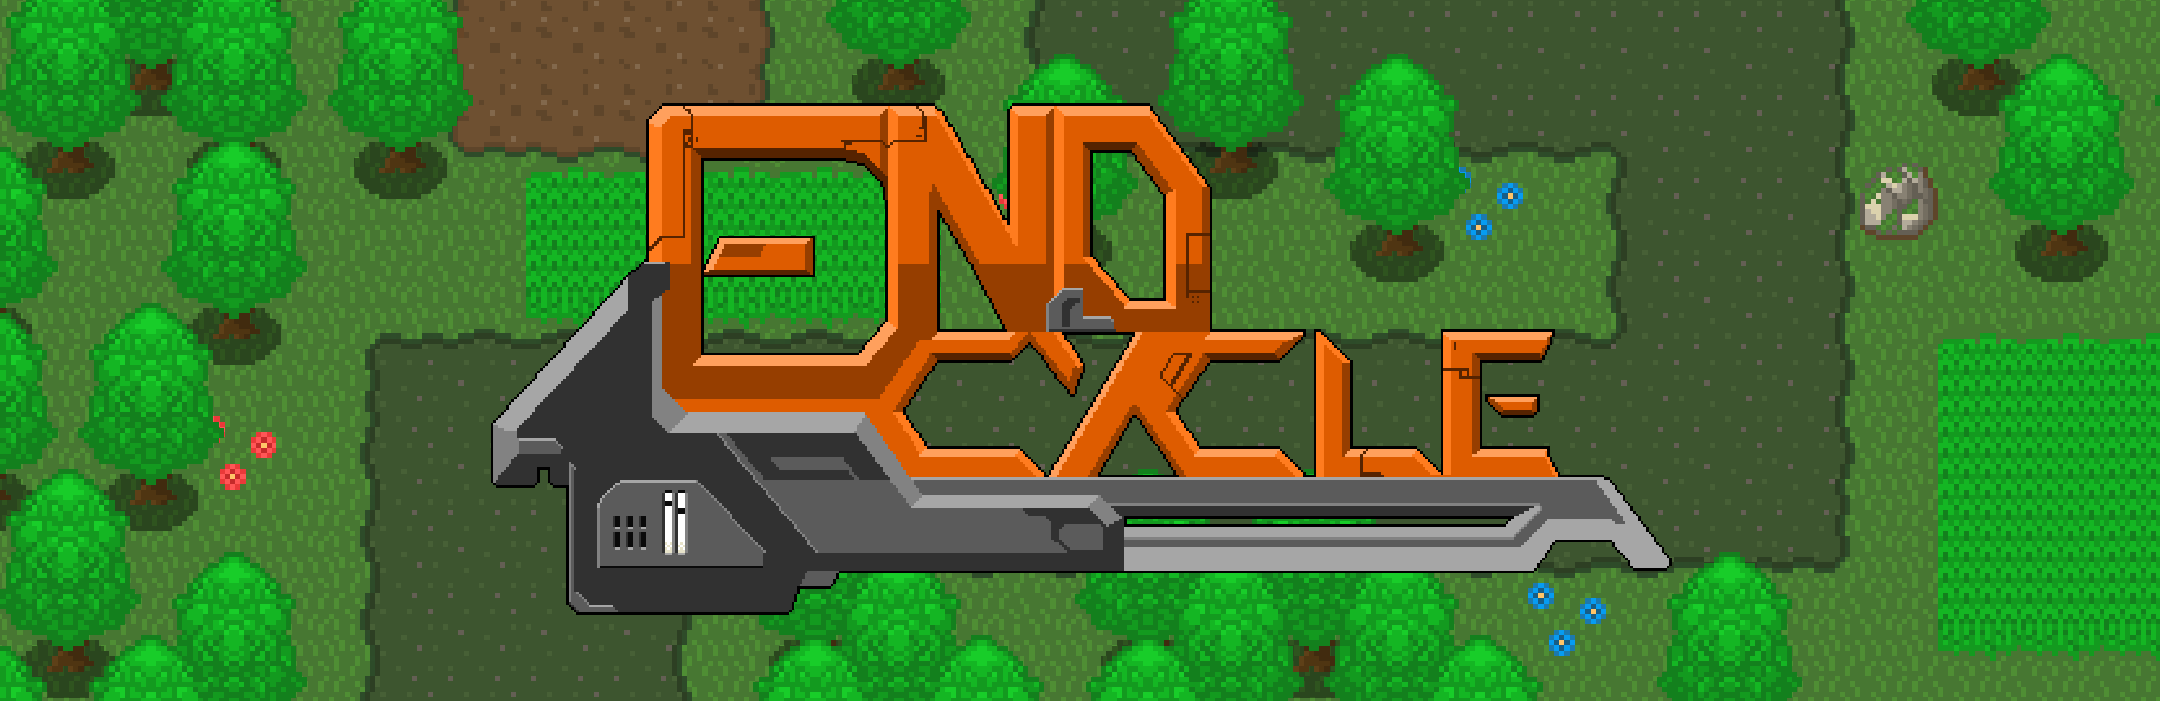 EndCycle - Singleplayer & Online Multiplayer Action RPG